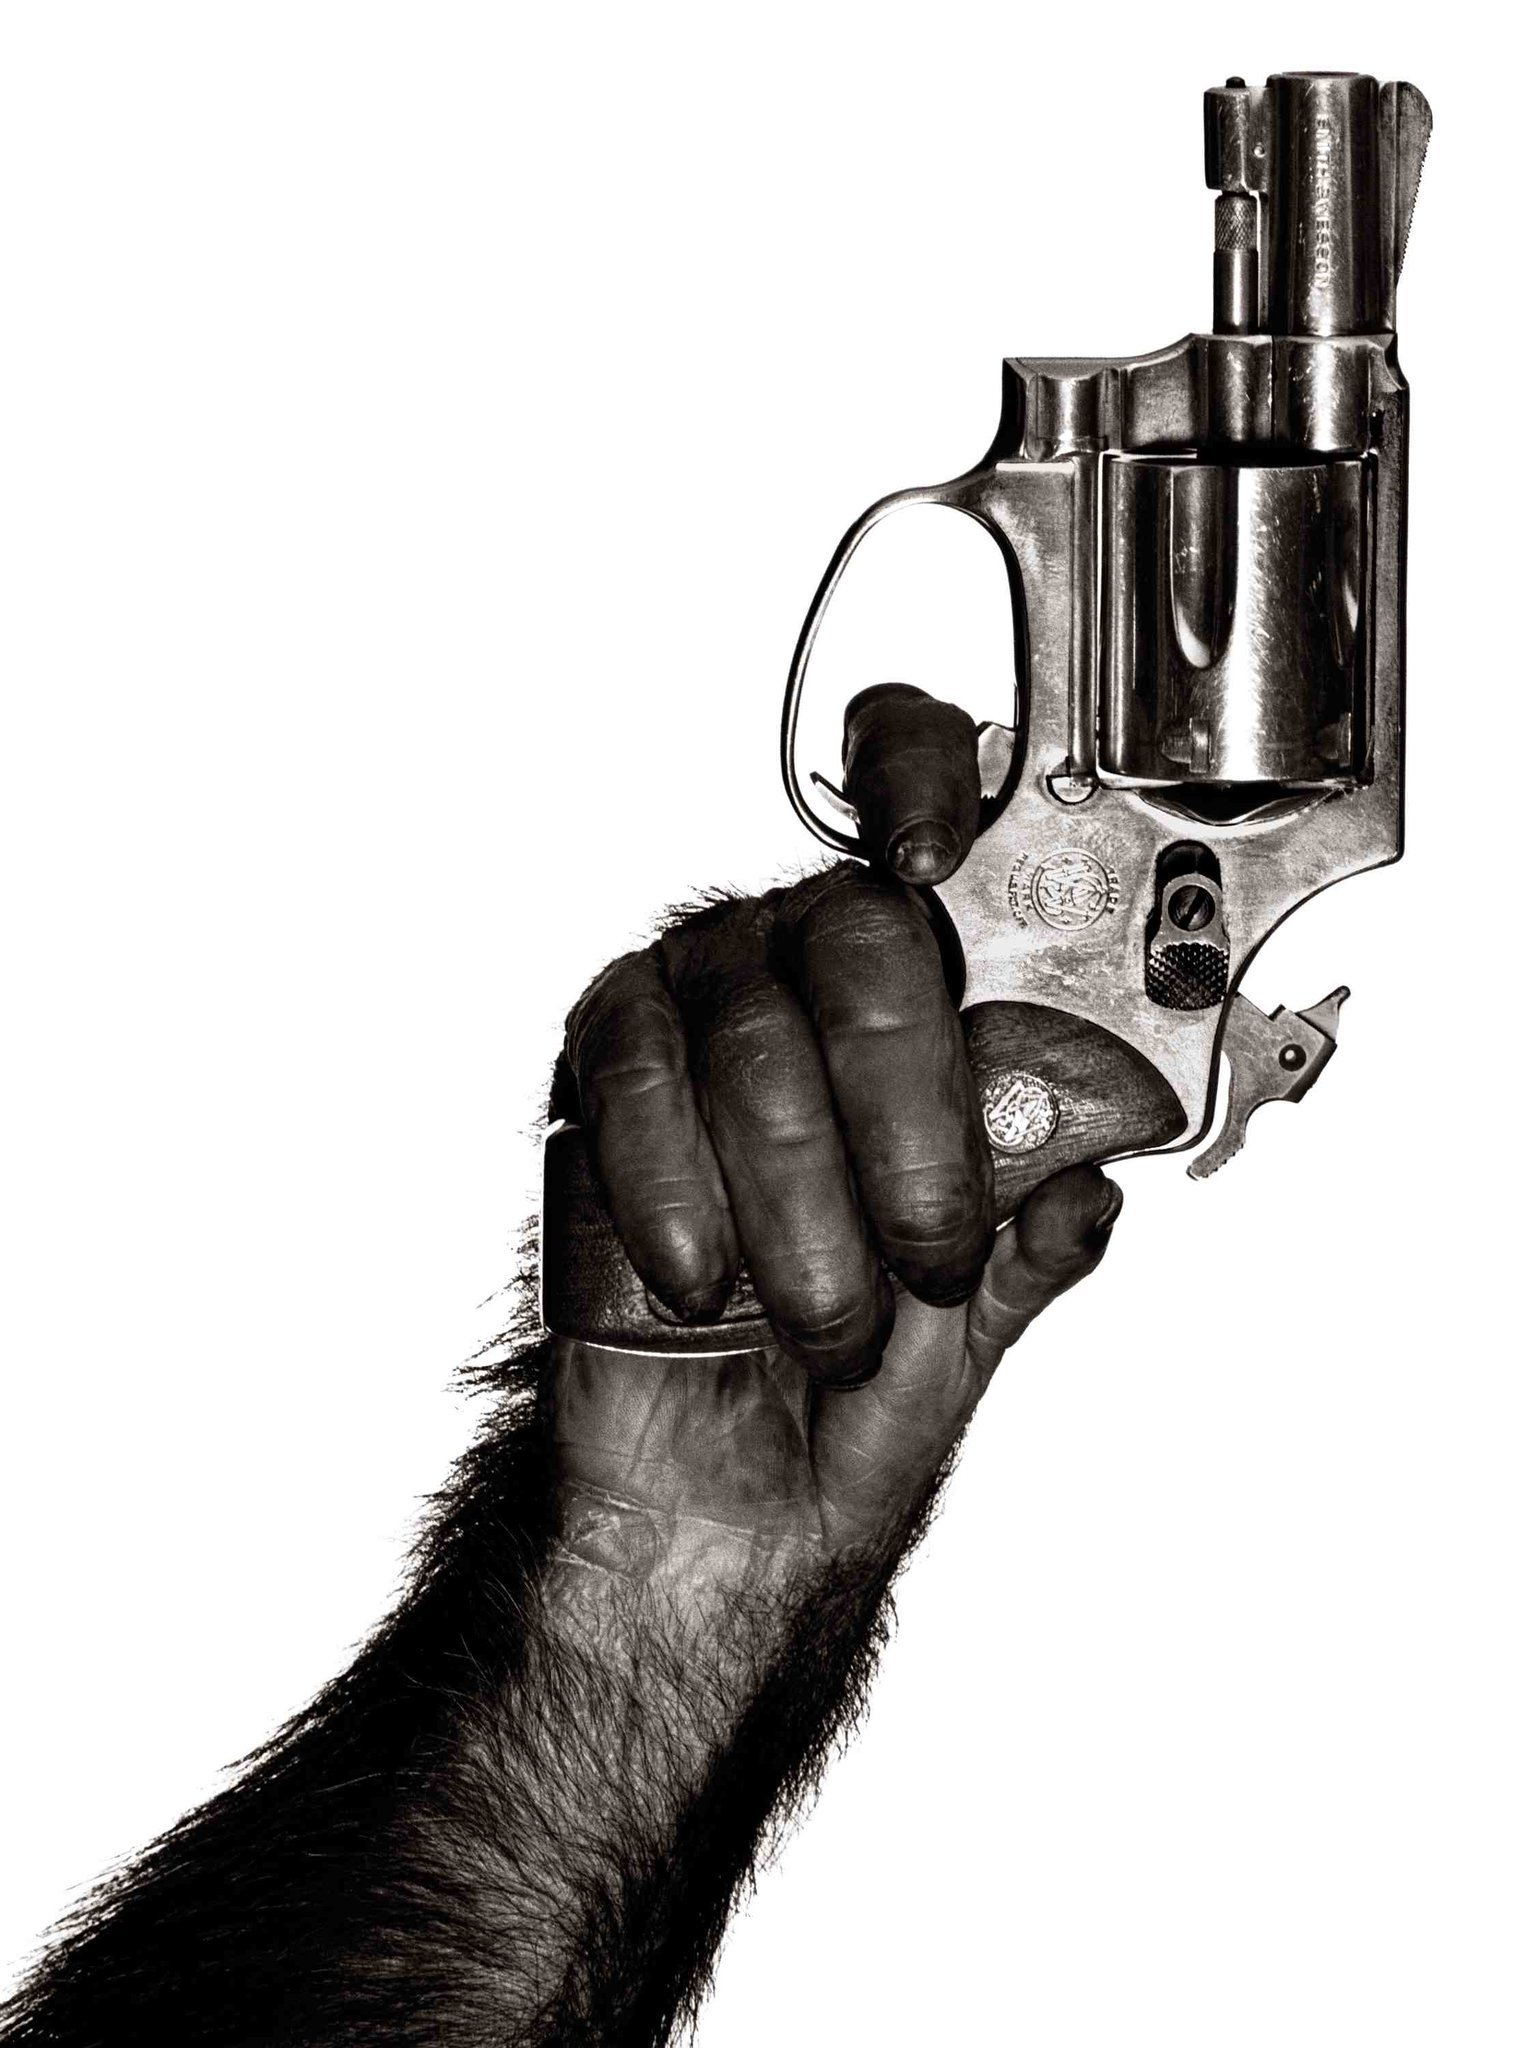 Monkey with Gun © Albert Watson